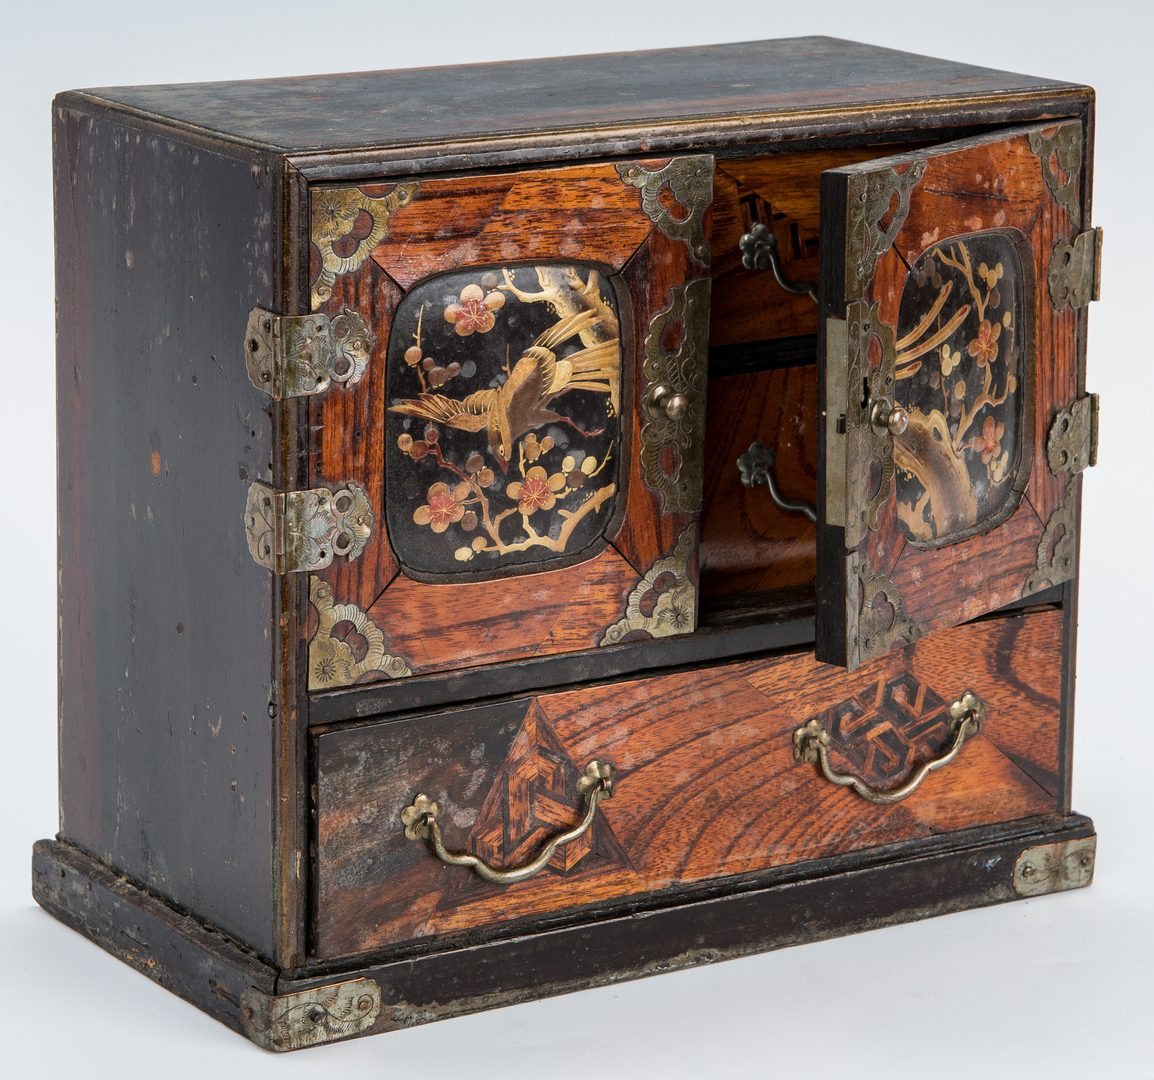 Lot 33: 2 Asian Inlaid Jewelry or Keepsake Chests